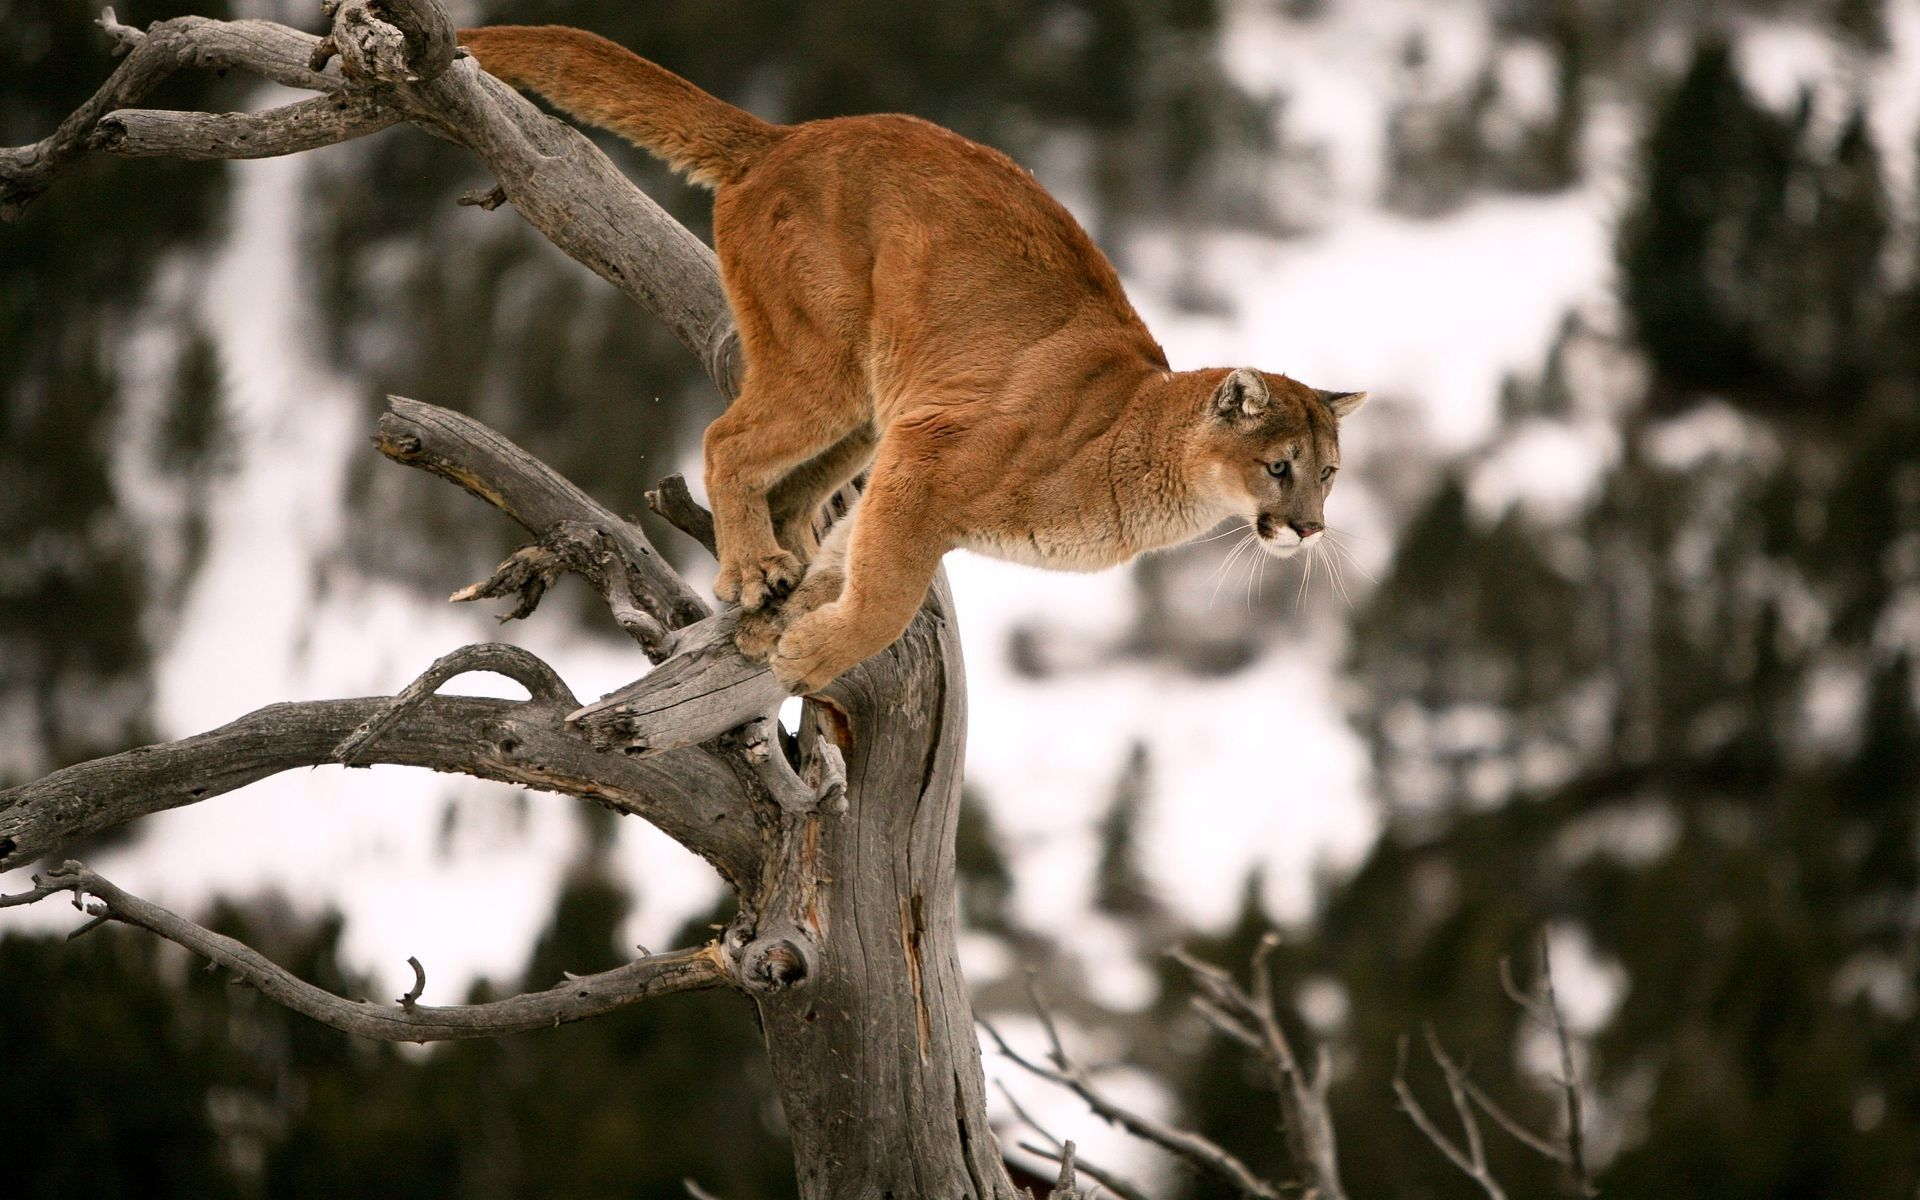 cougar full hd wallpaper and background image | 1920x1200 | id:207833